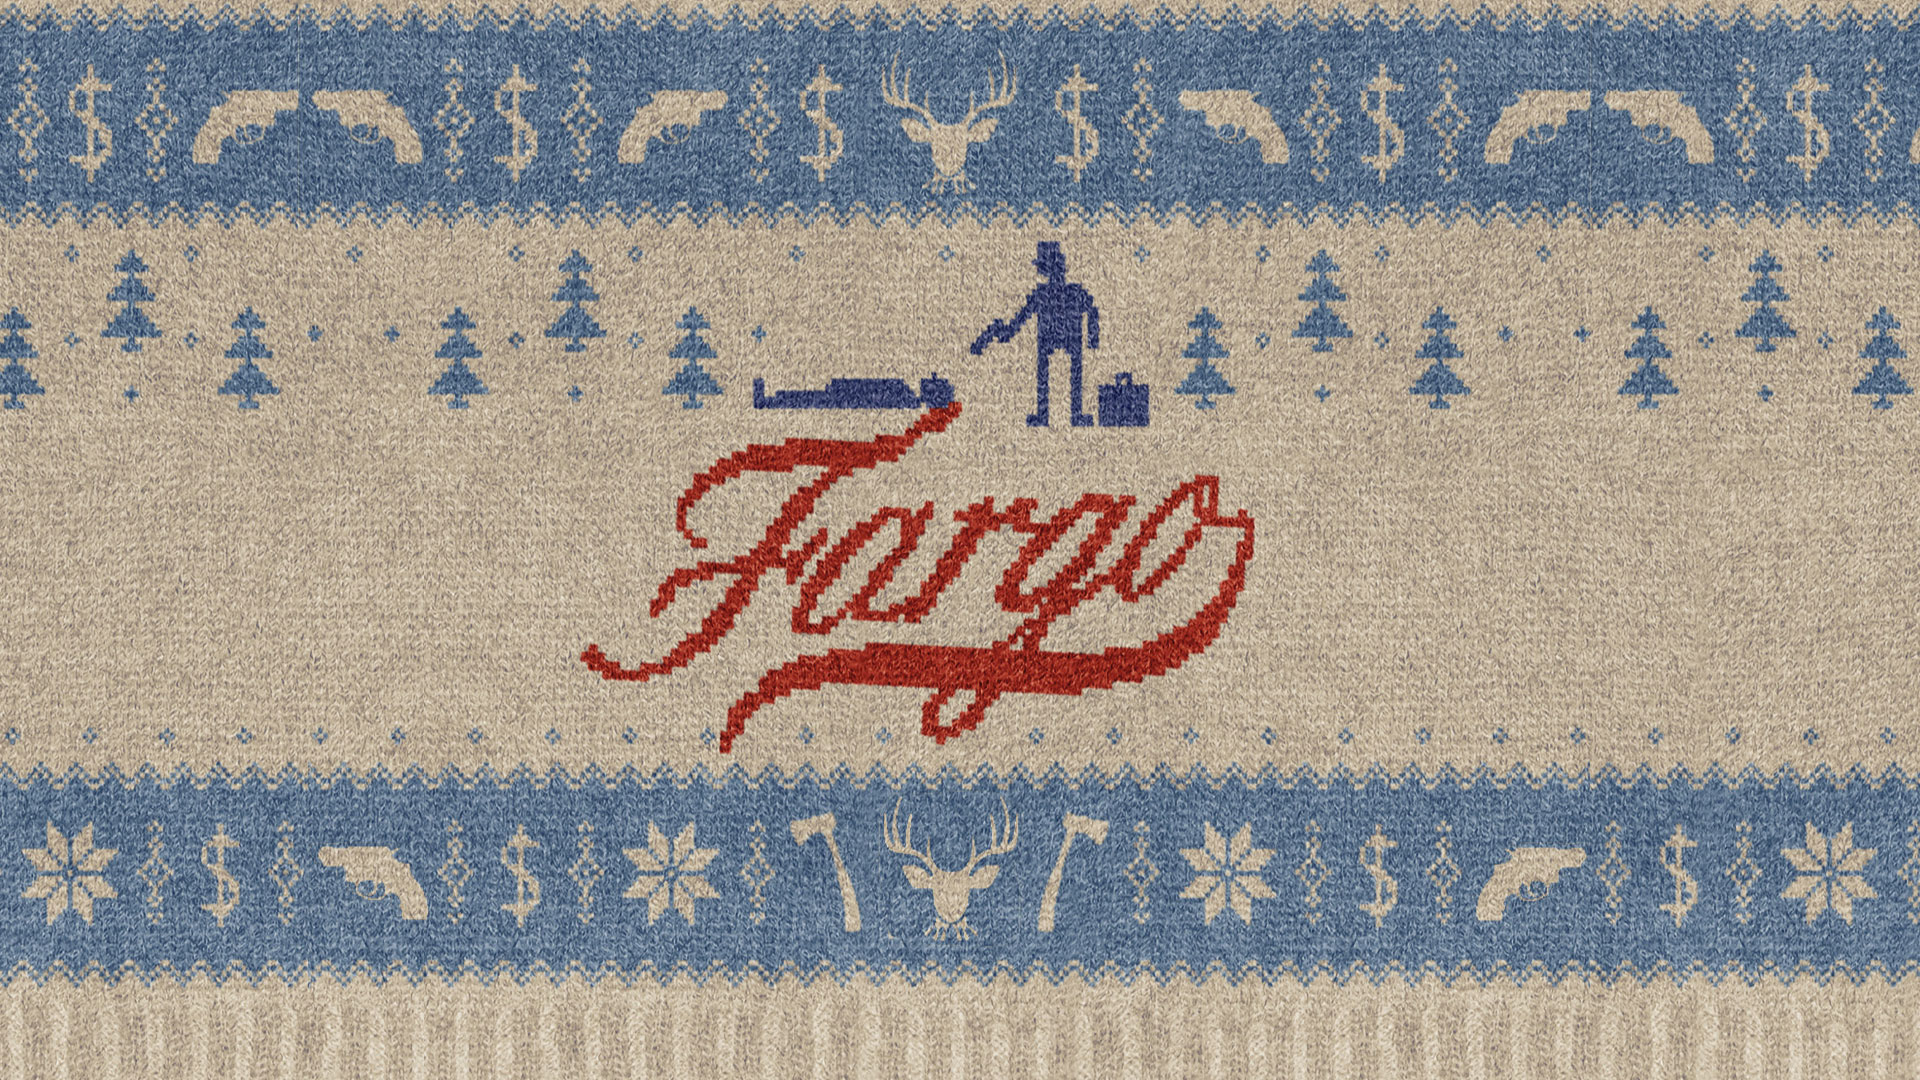 Fargo Wallpaper